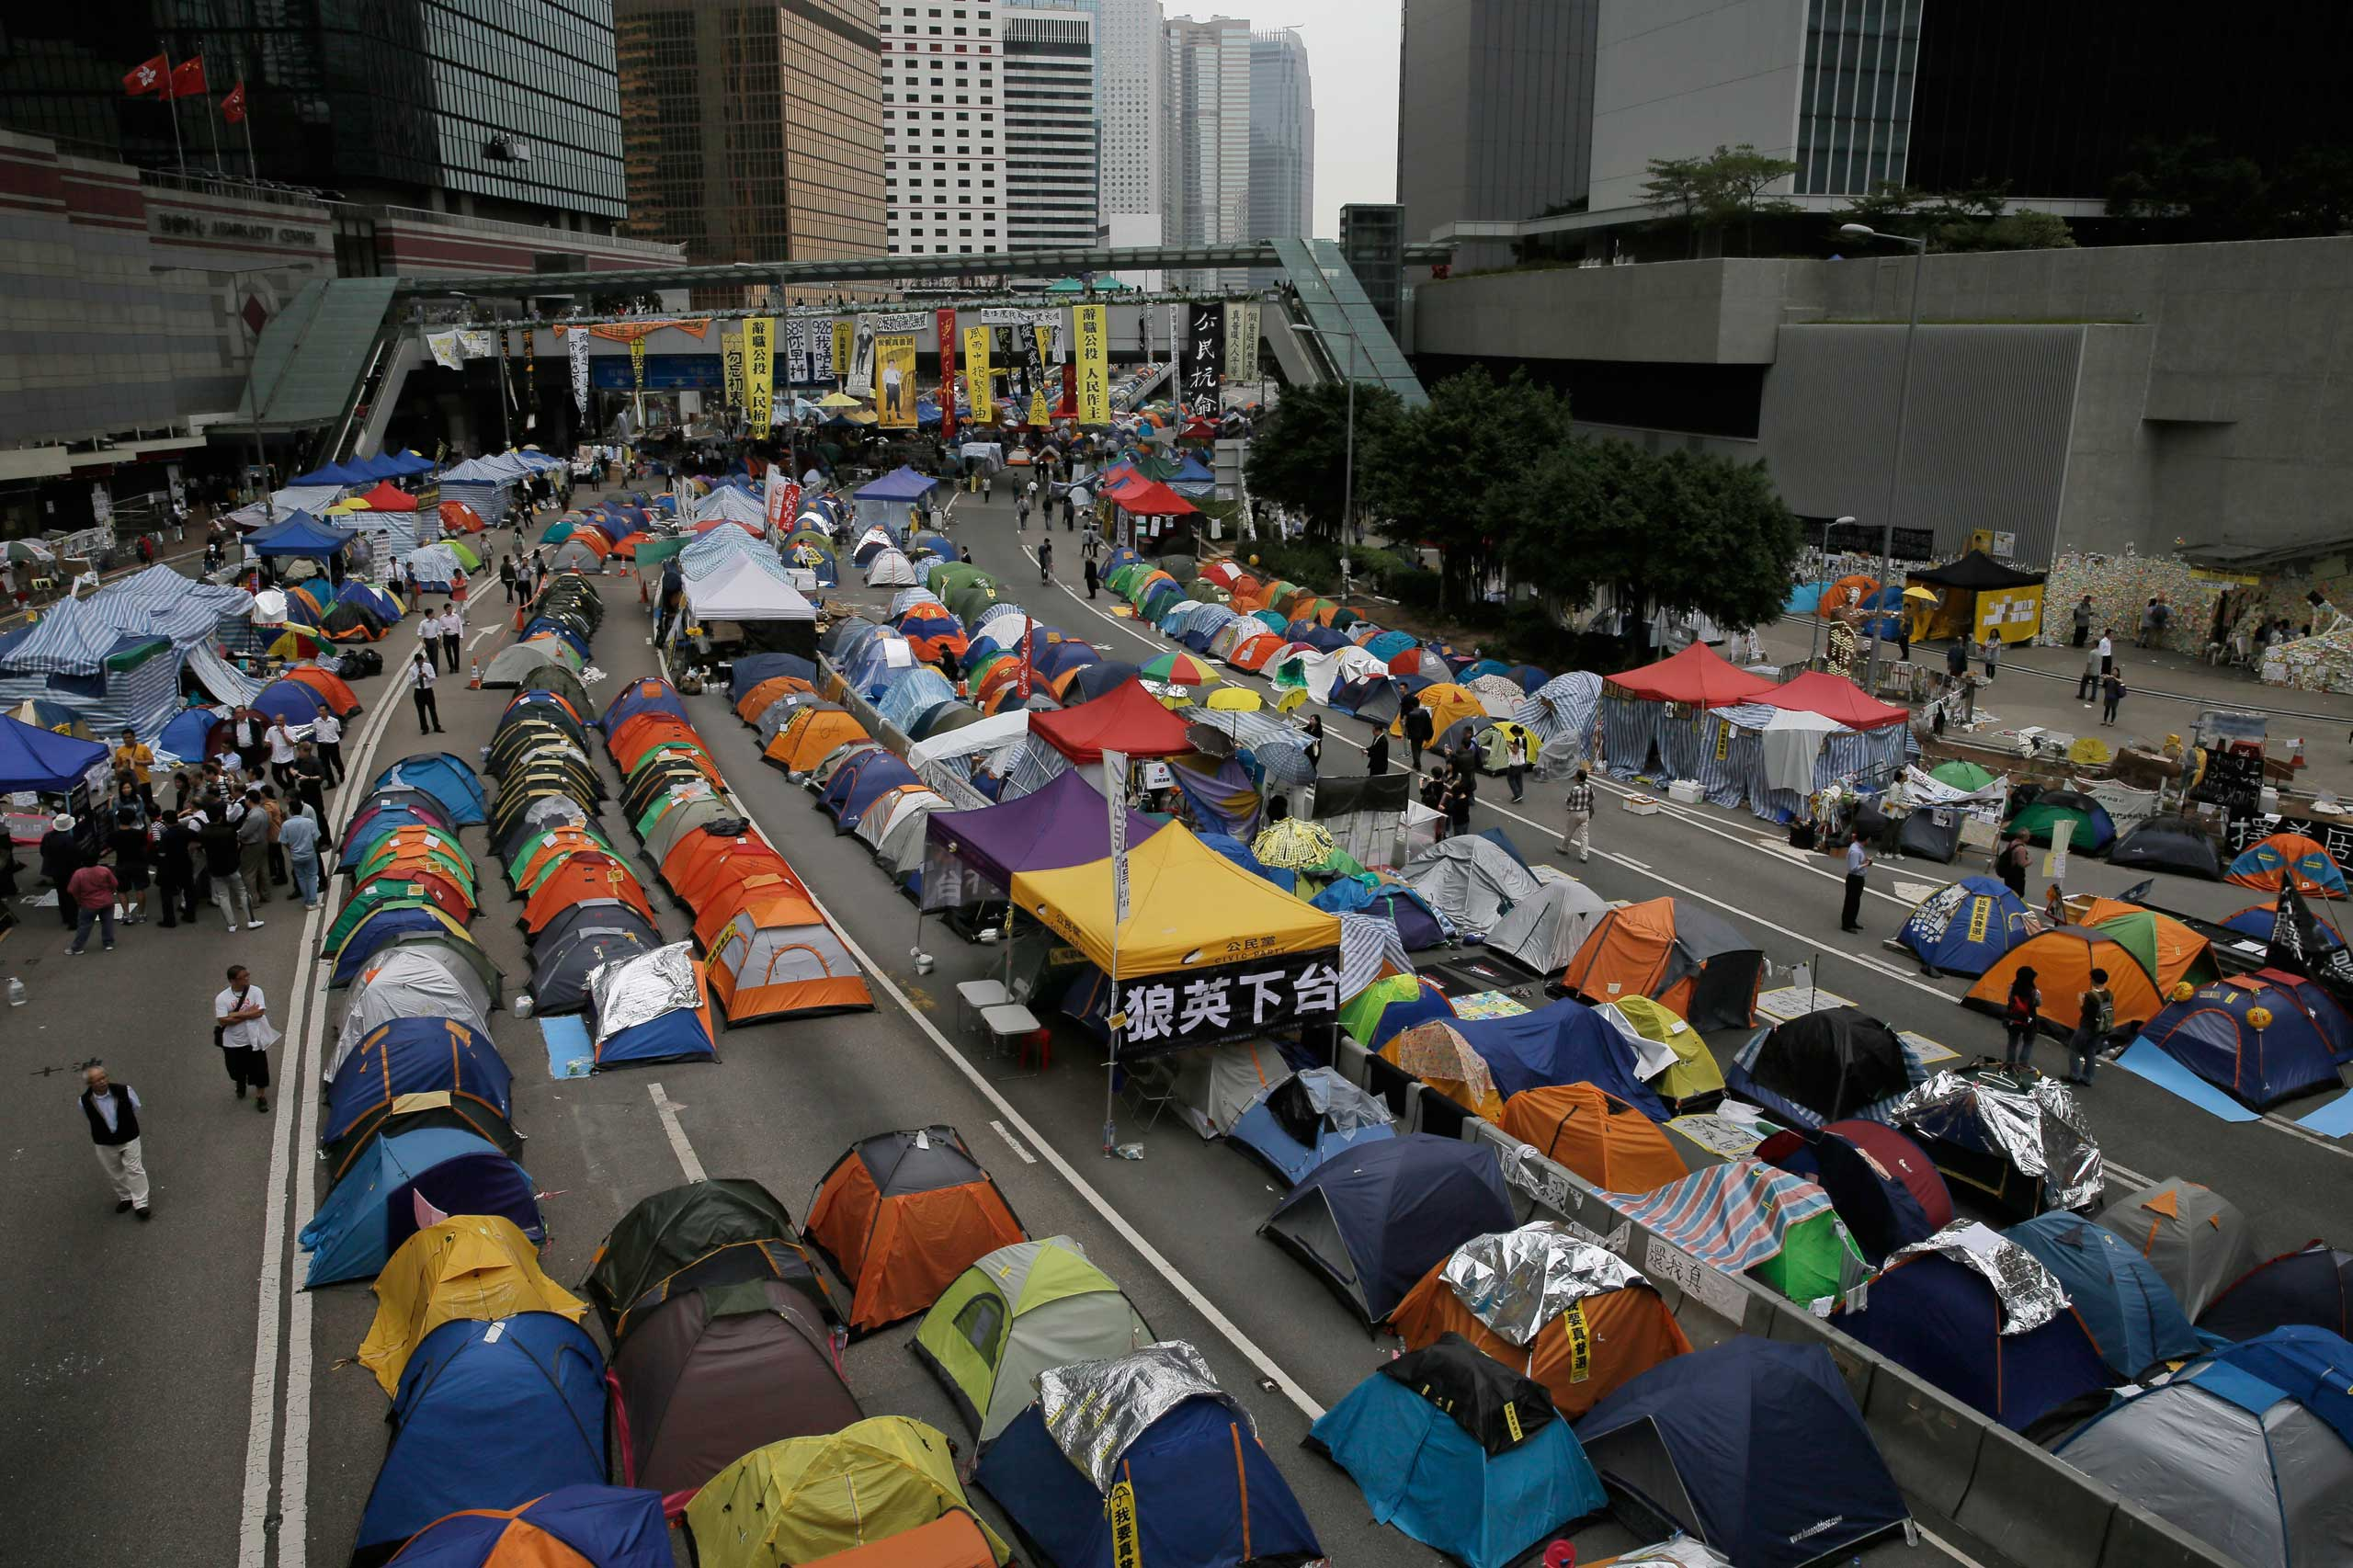 Tents set up by pro-democracy protesters are seen in an occupied area outside the government headquarters in Hong Kong's Admiralty district, Nov. 12, 2014.